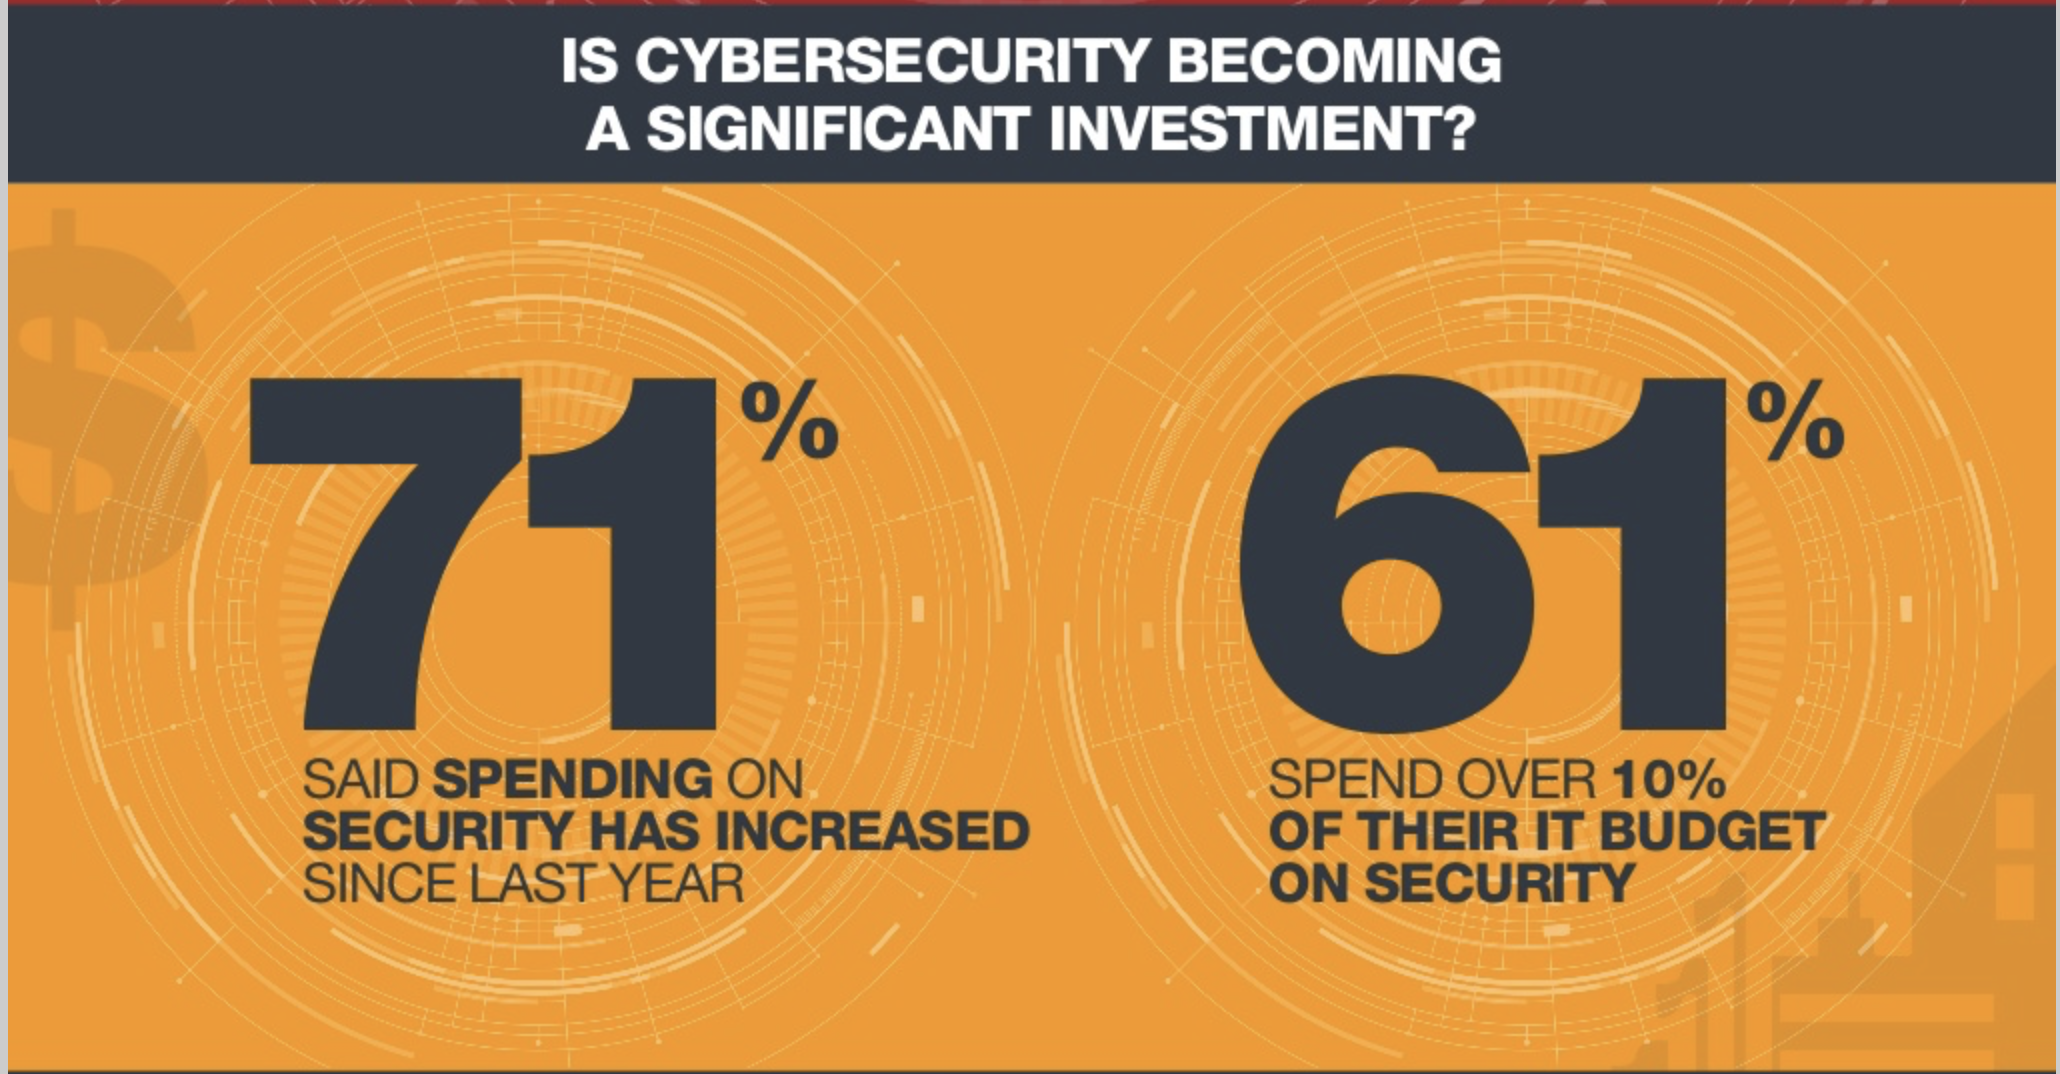 Is Cybersecurity an investment